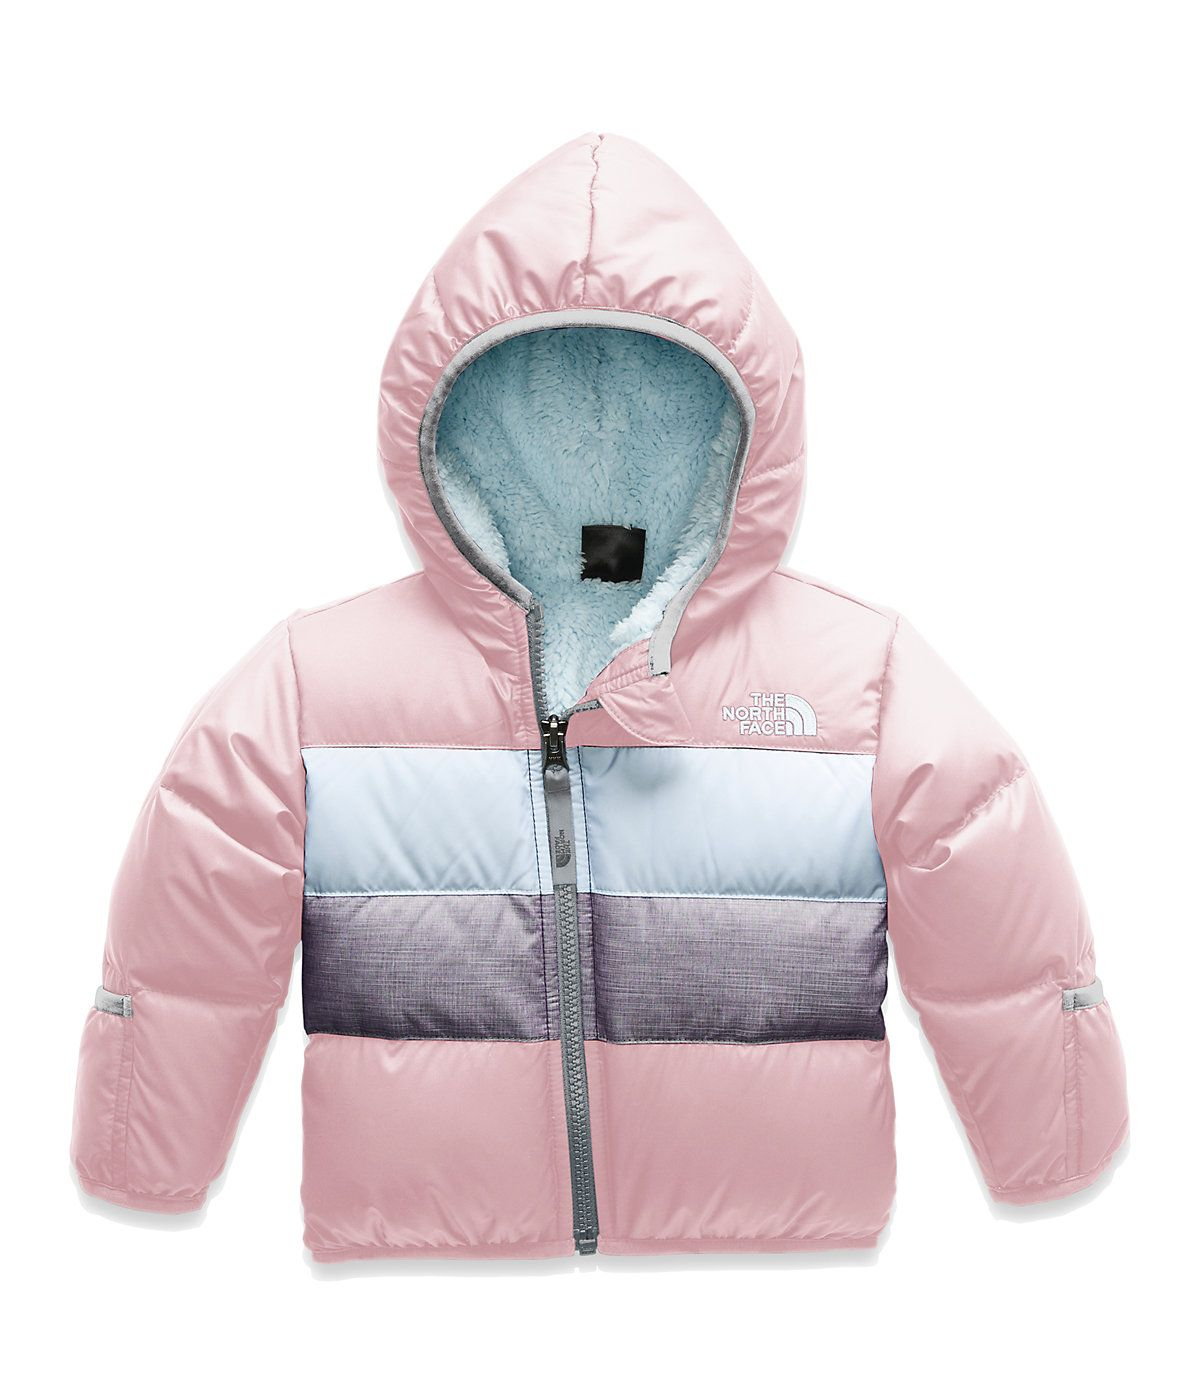 Infant Moondoggy 2 0 Down Jacket The North Face North Face Puffer Jacket Baby Girl Outfits Newborn The North Face [ 1396 x 1200 Pixel ]